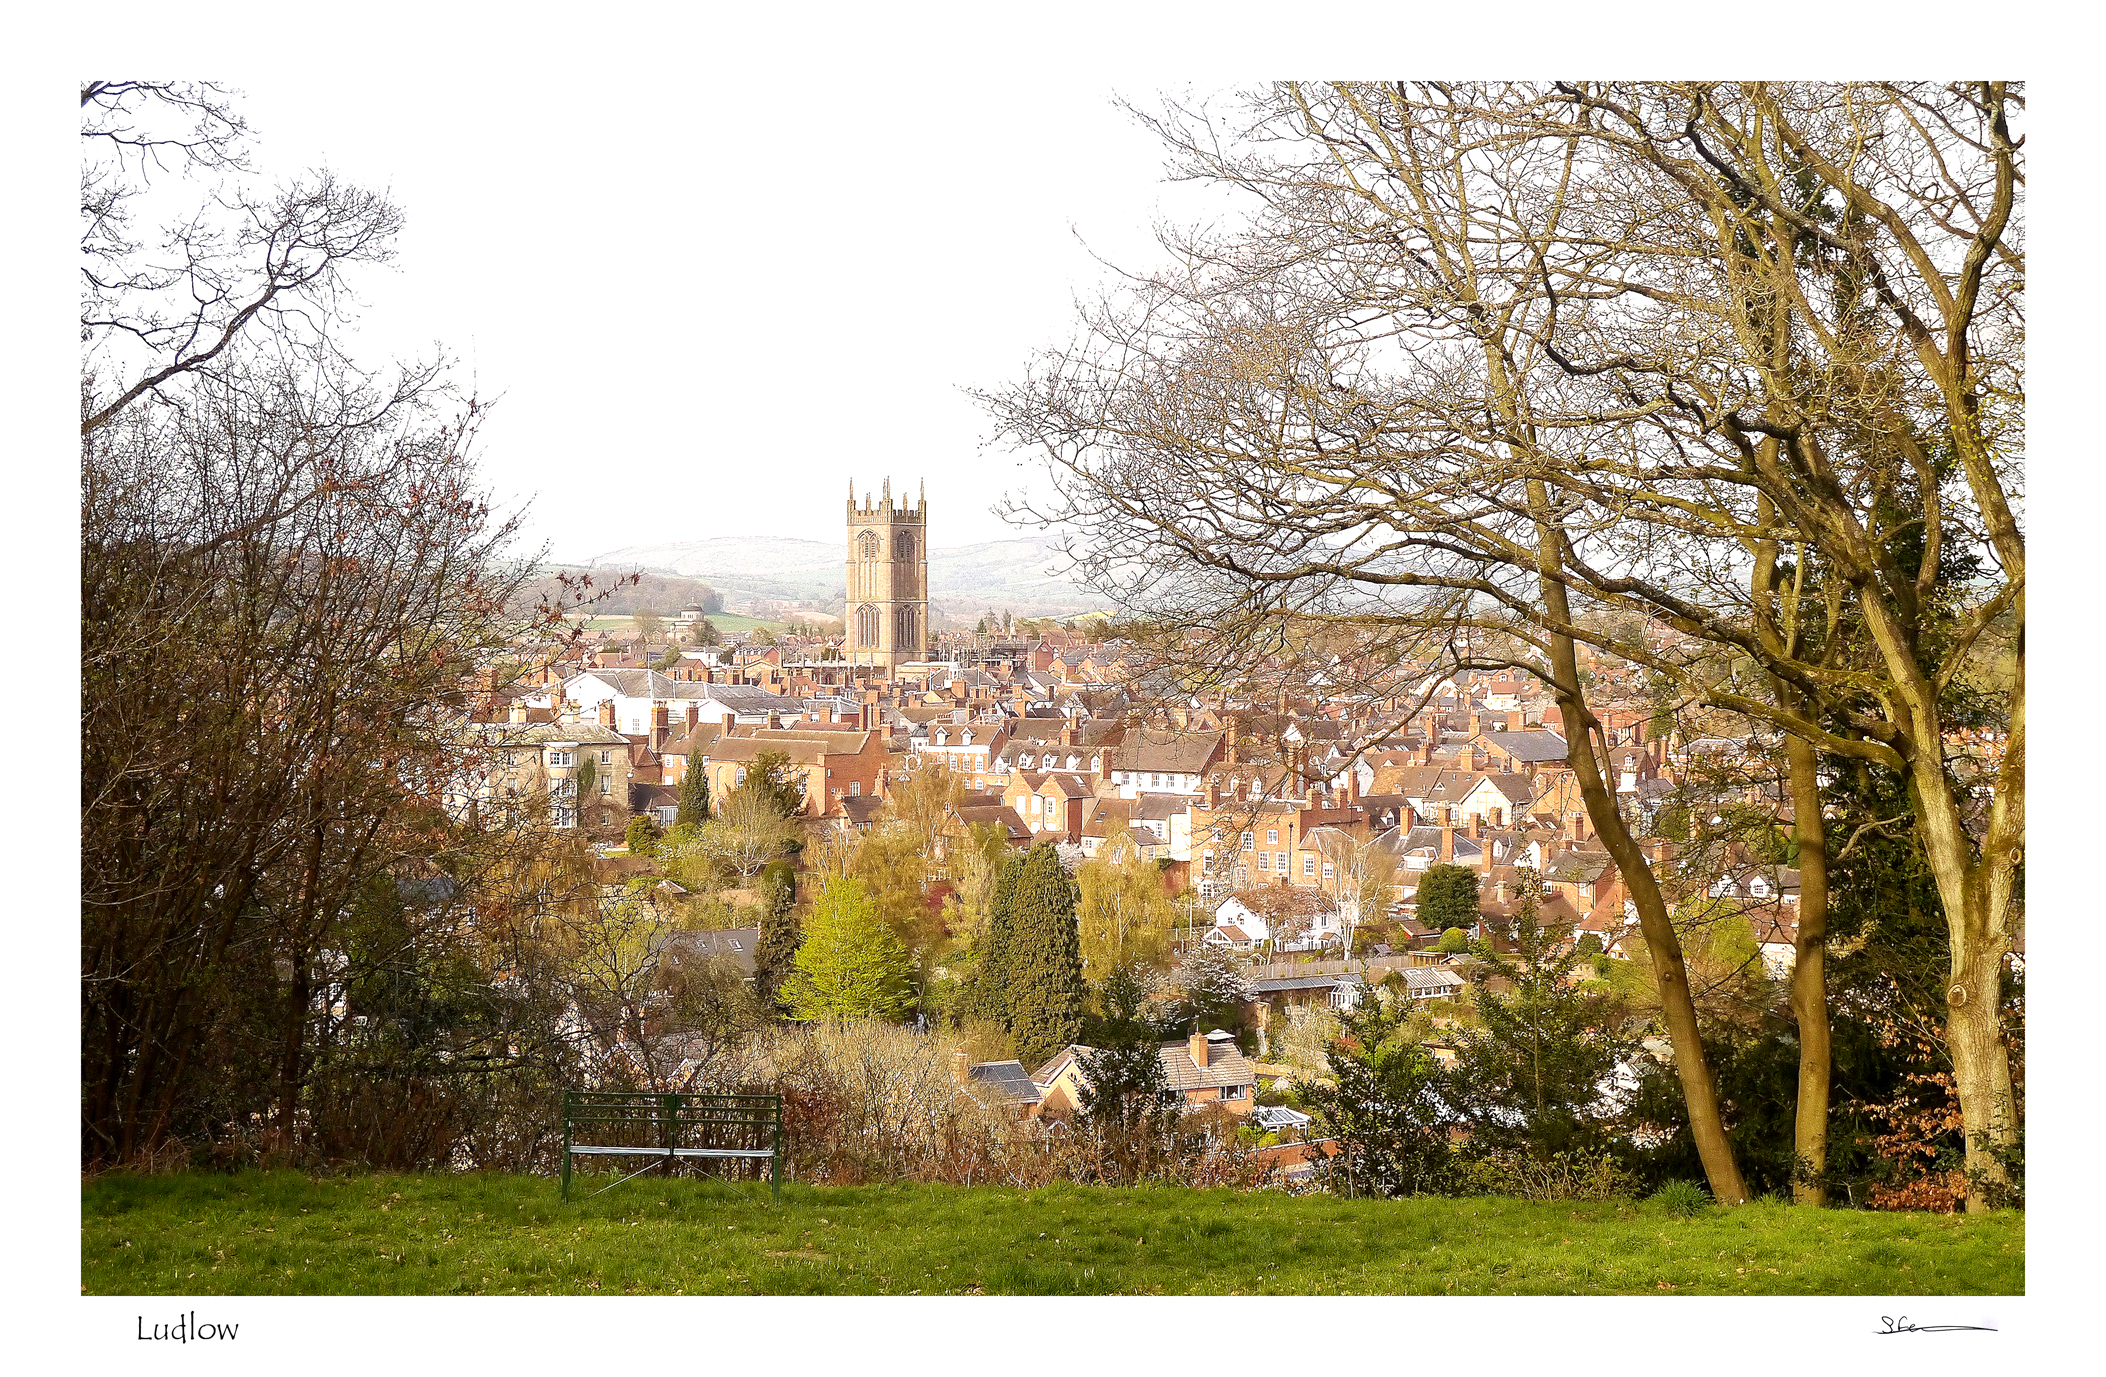 LudlowFilter_A4